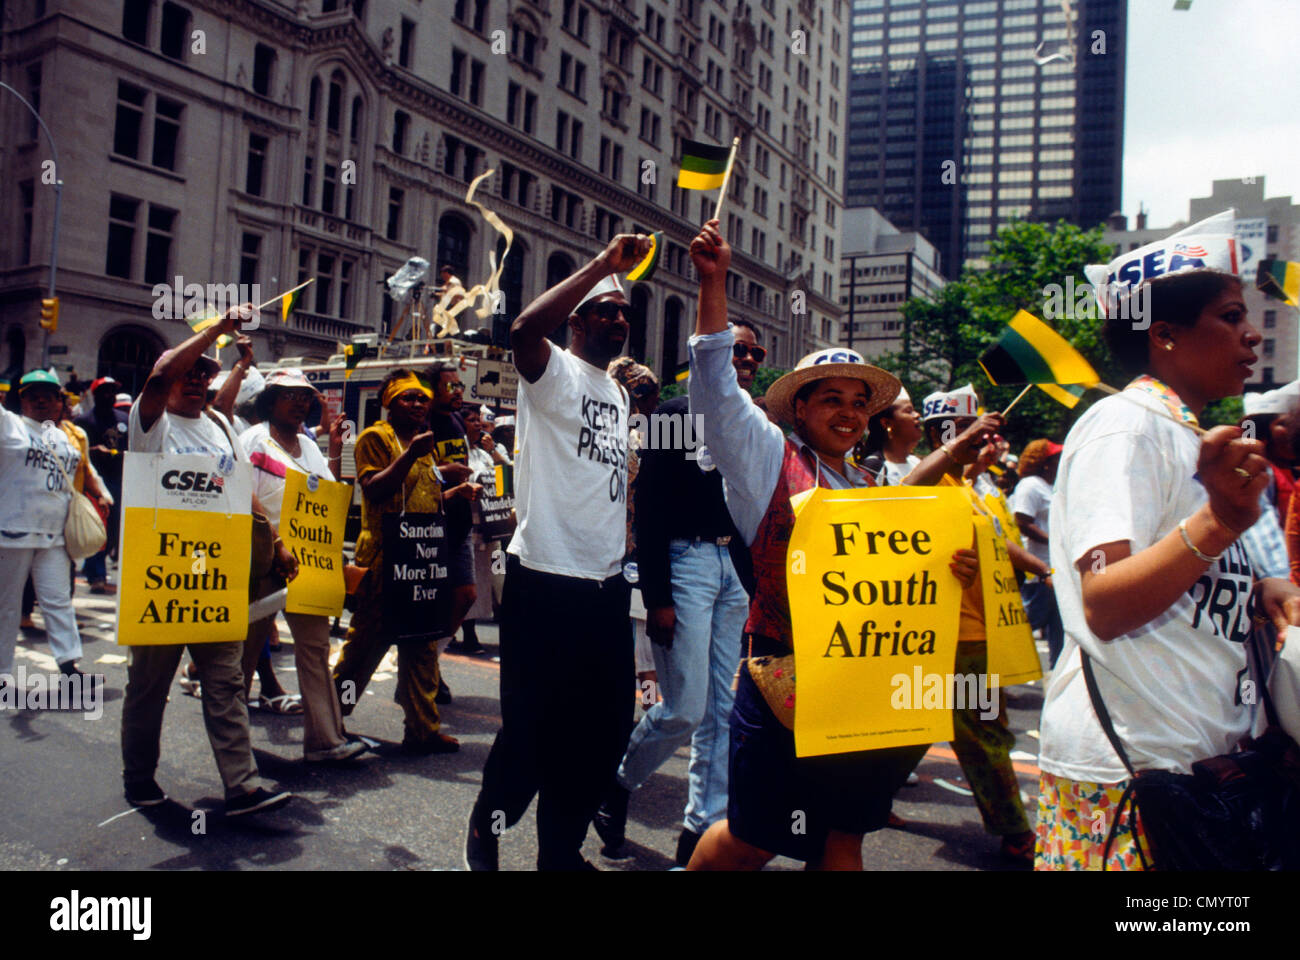 Union workers protest to end apartheid in South Africa on May 21, 1991. (© Frances M. Roberts) - Stock Image